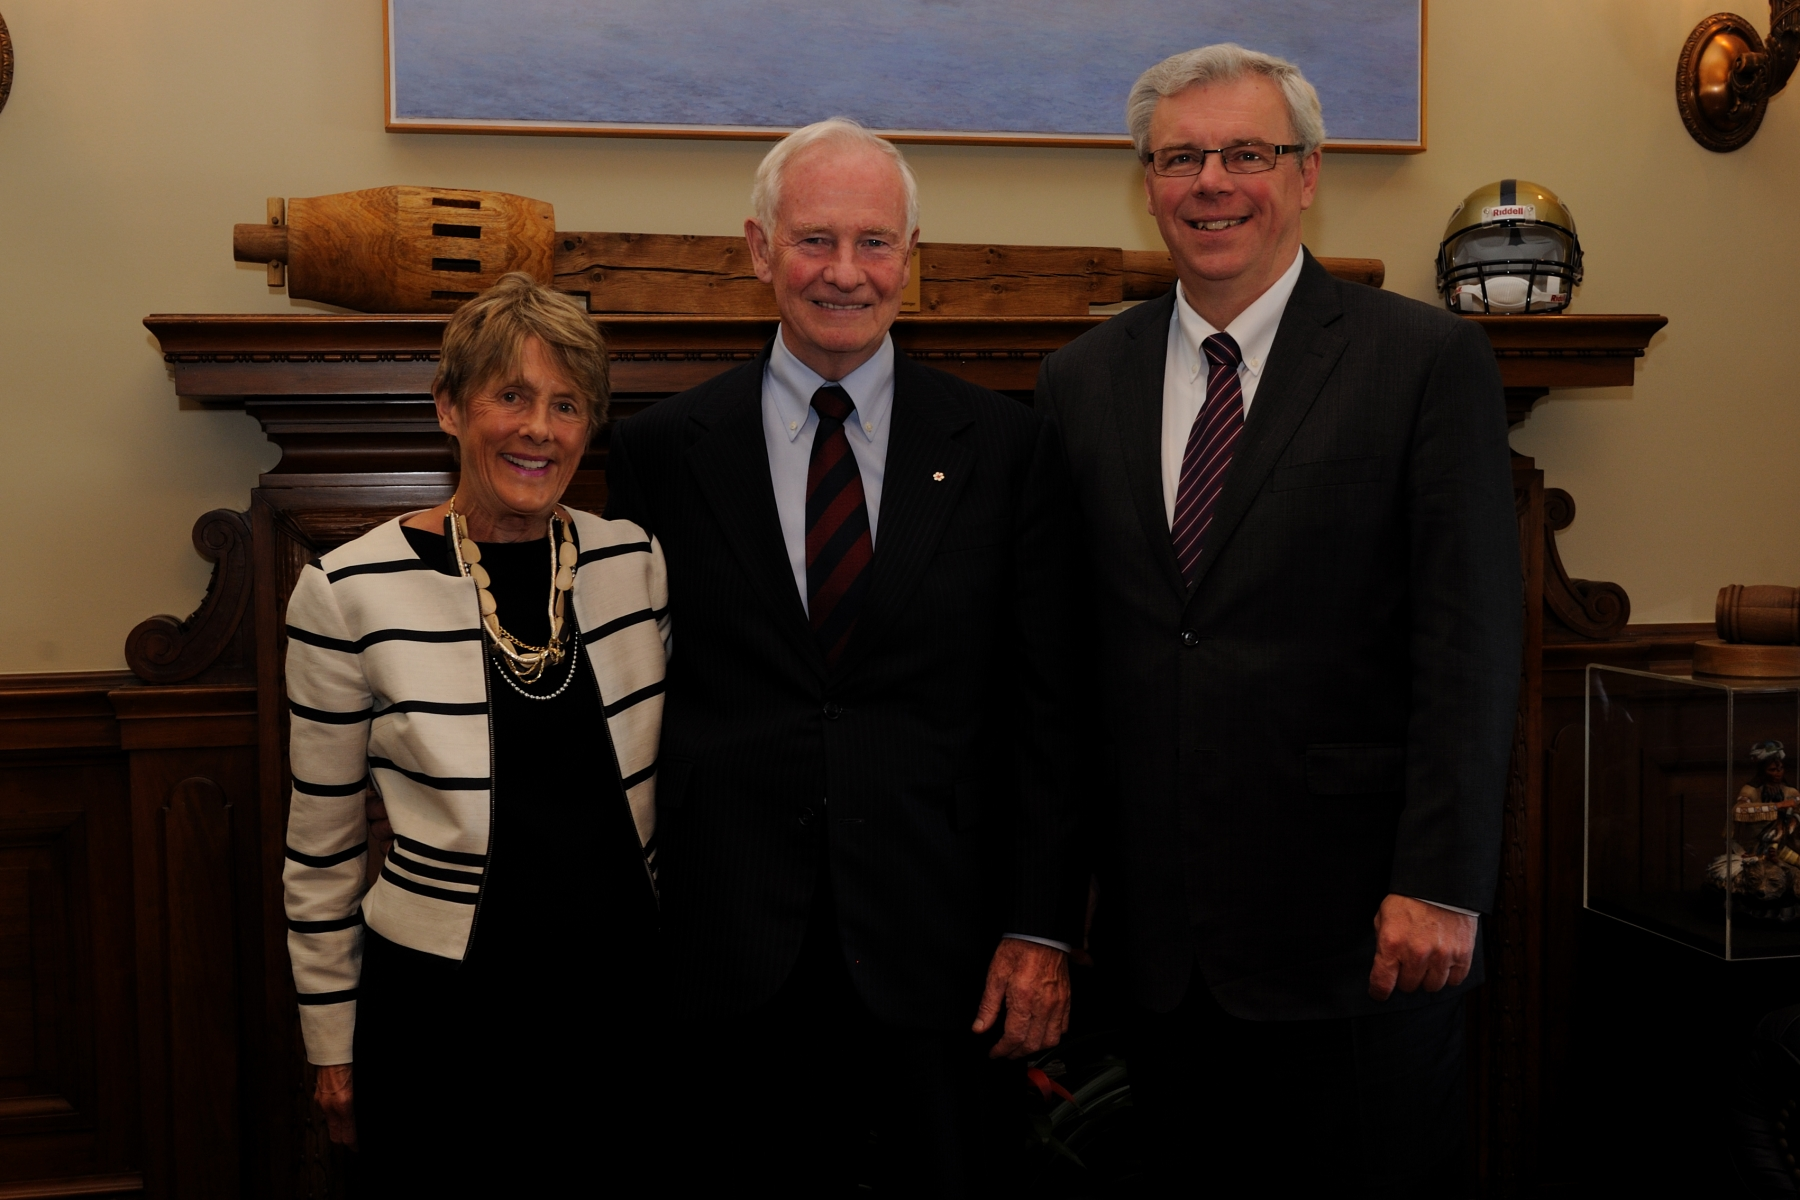 Their Excellencies with the Honourable Greg Selinger, Premier of Manitoba.